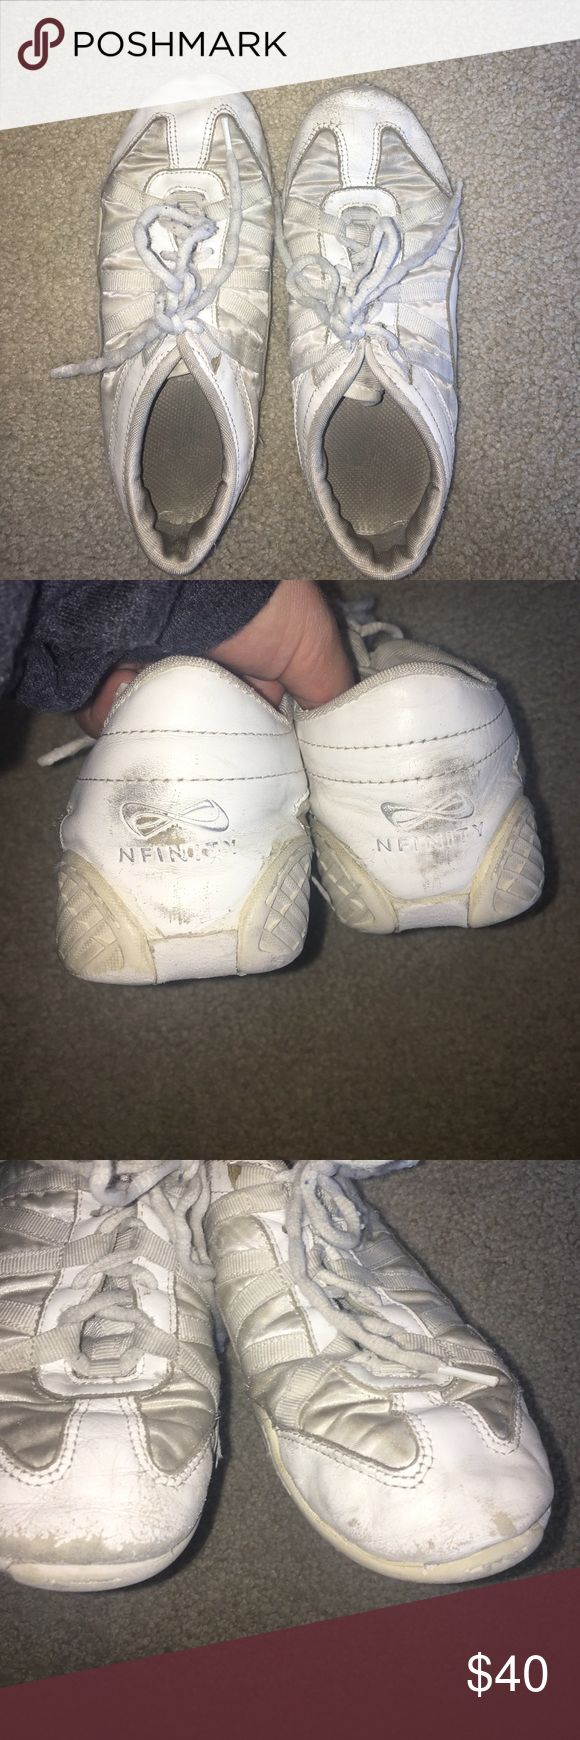 nfinity cheer shoes nfinity cheer shoes. worn. no holes, just black marks. 6.5 Nike Shoes Athletic Shoes